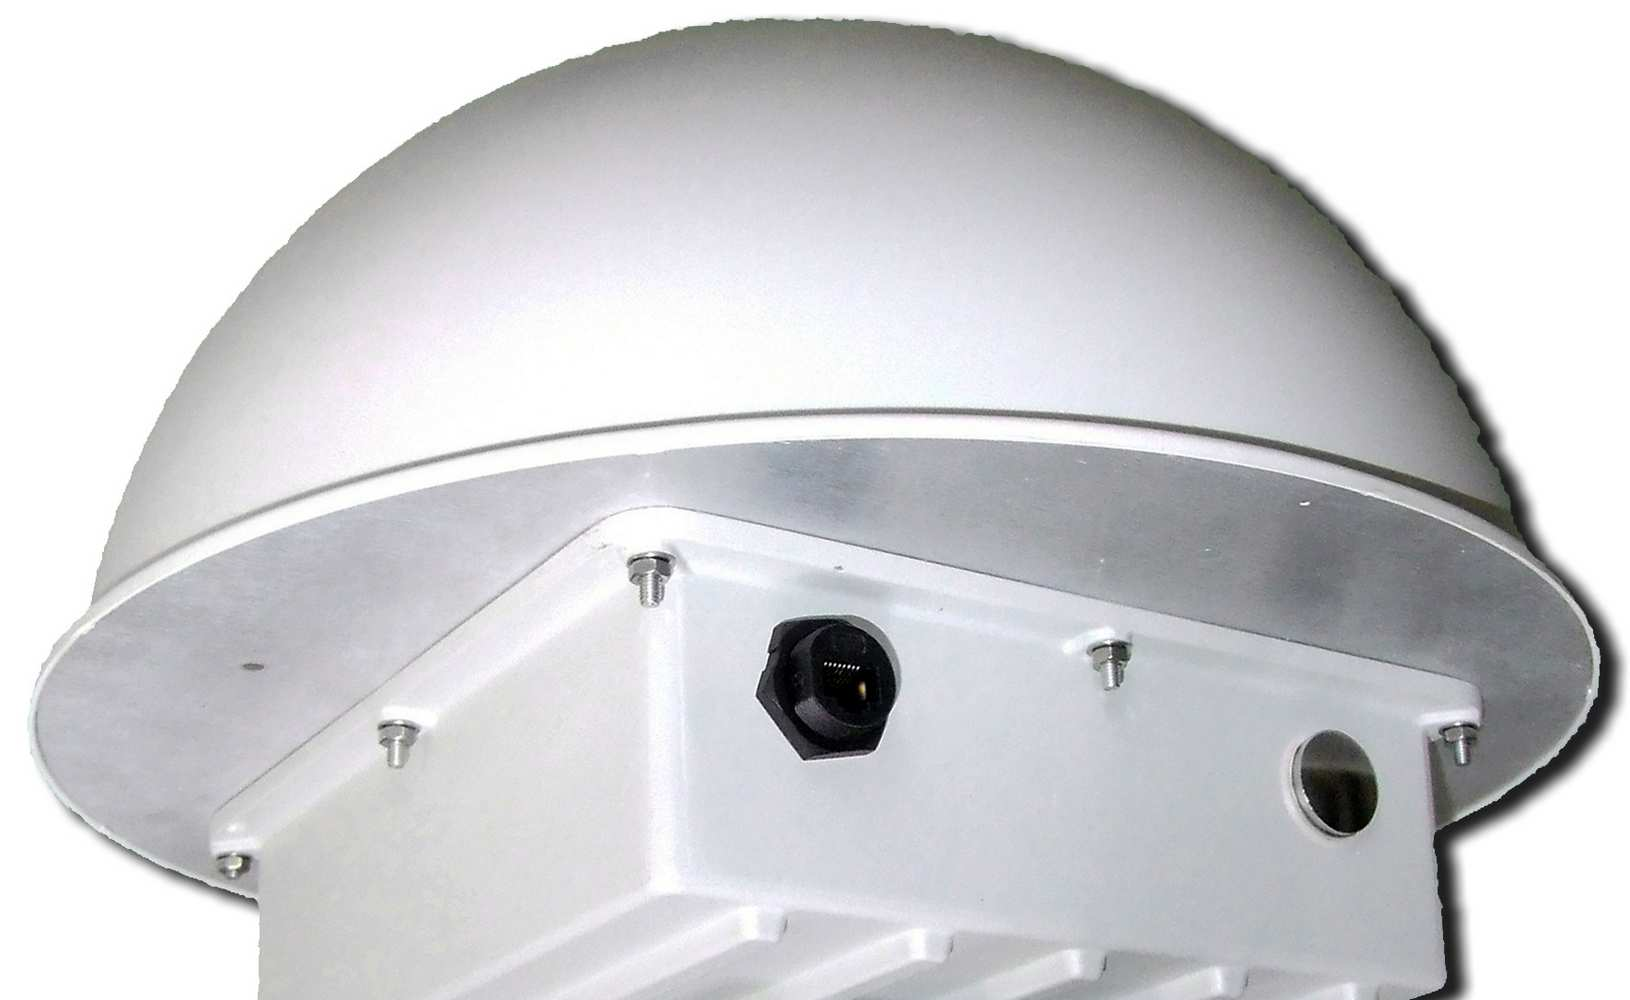 SICE_17GHz_Unlicensed_Point_to_Multipoint_Base_Station_2